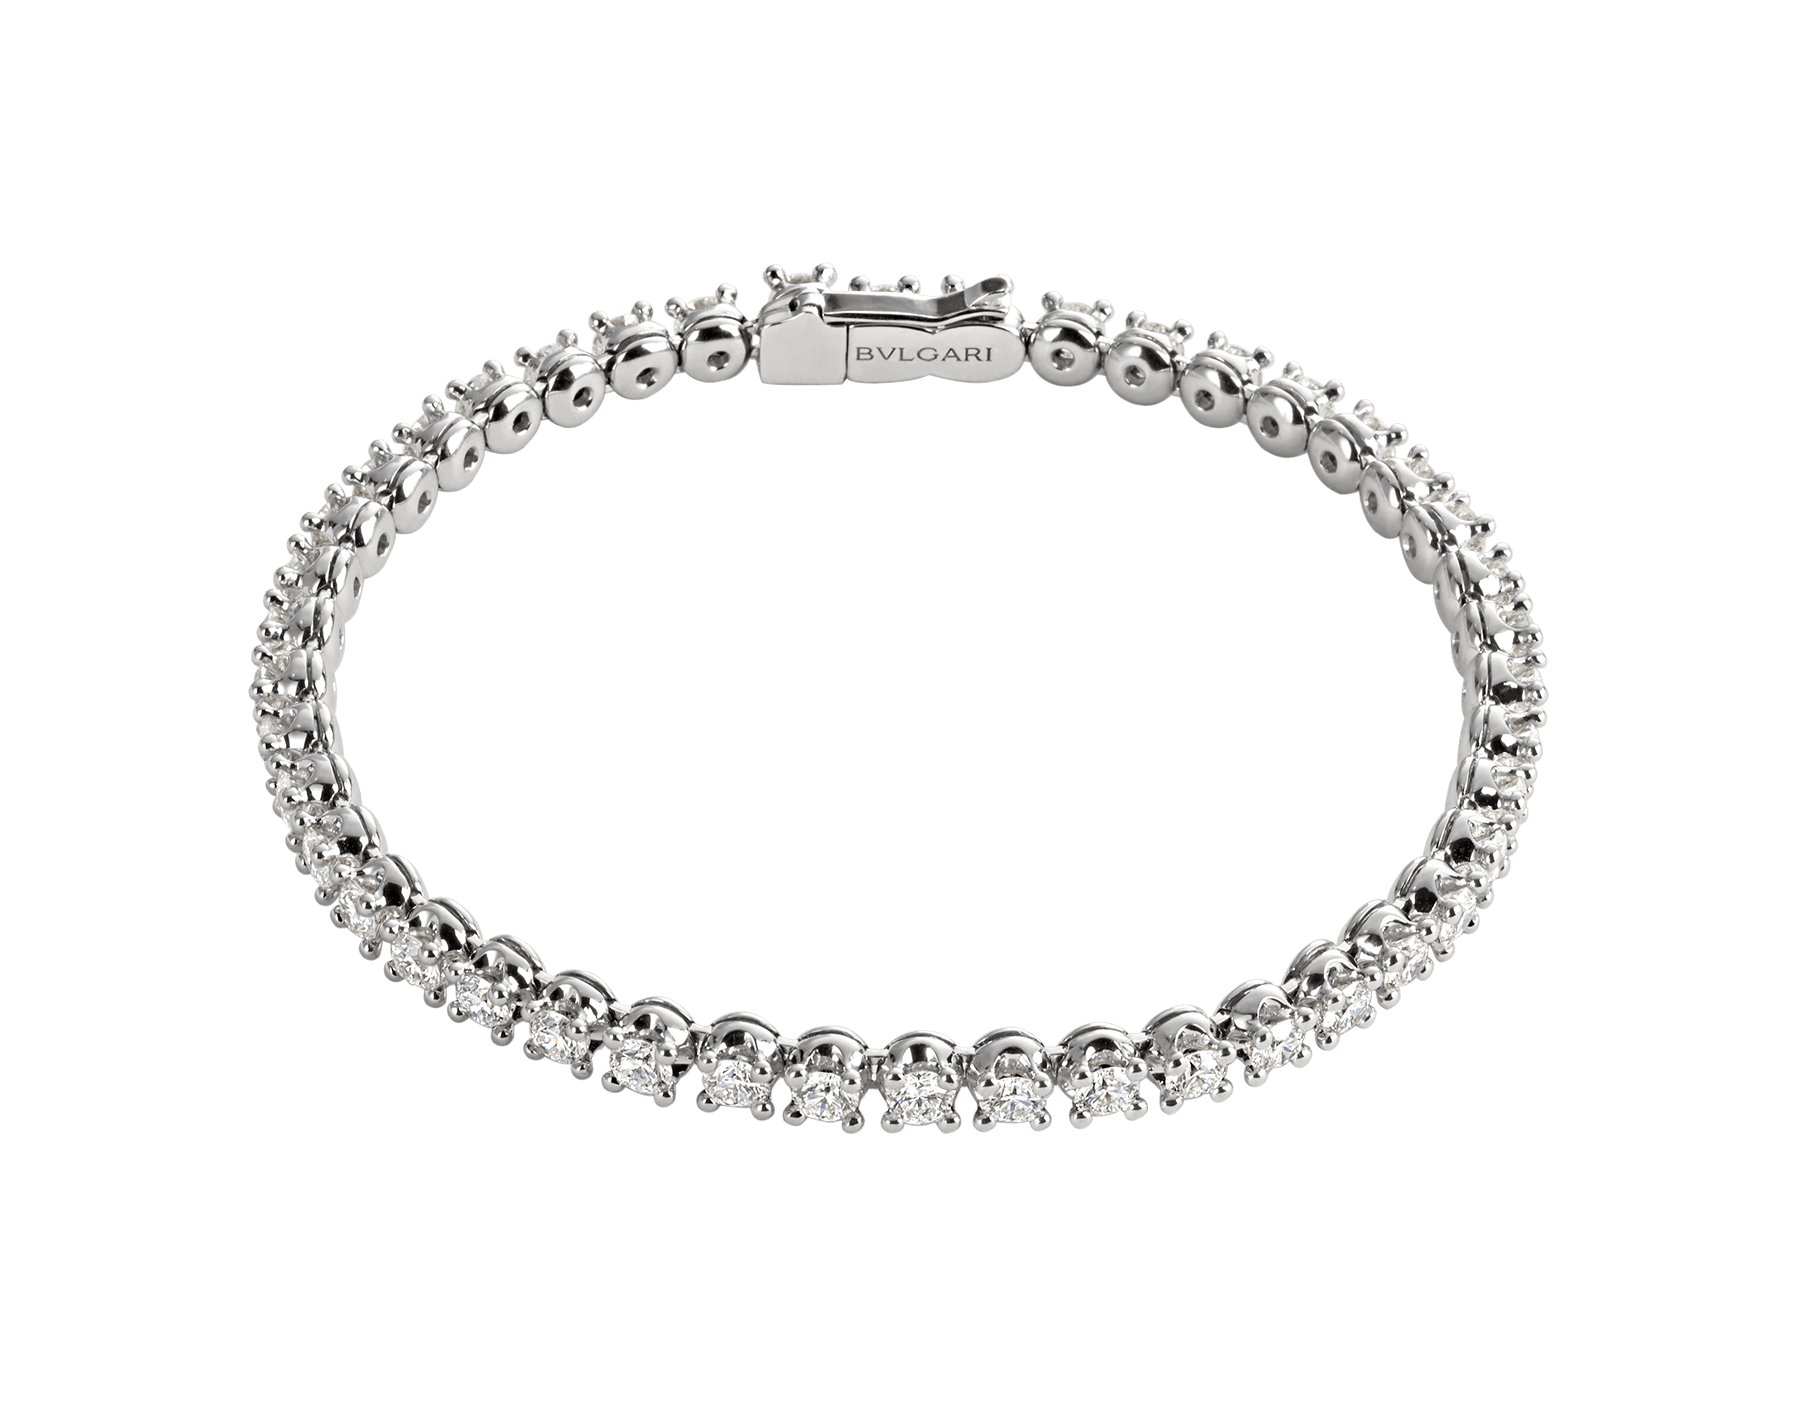 Corona 18 kt white gold tennis bracelet with round brilliant cut diamonds BR850566 image 1